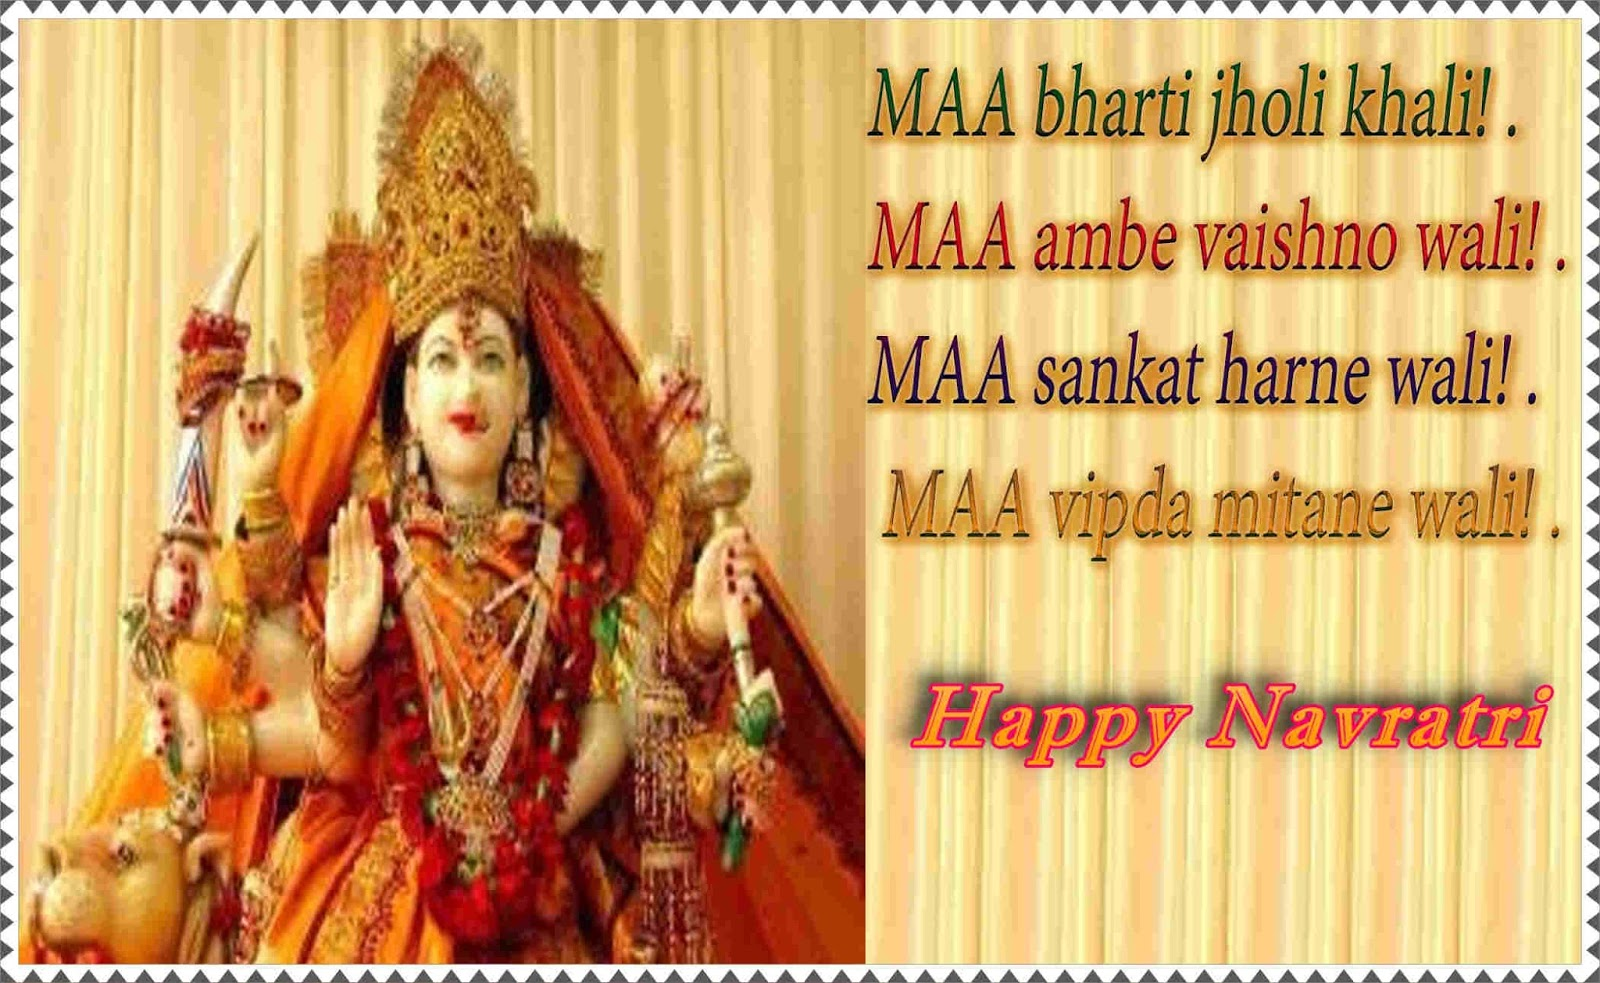 Happy navratri shayari navratri greeting navratri image greetings in hindi kristyandbryce Choice Image